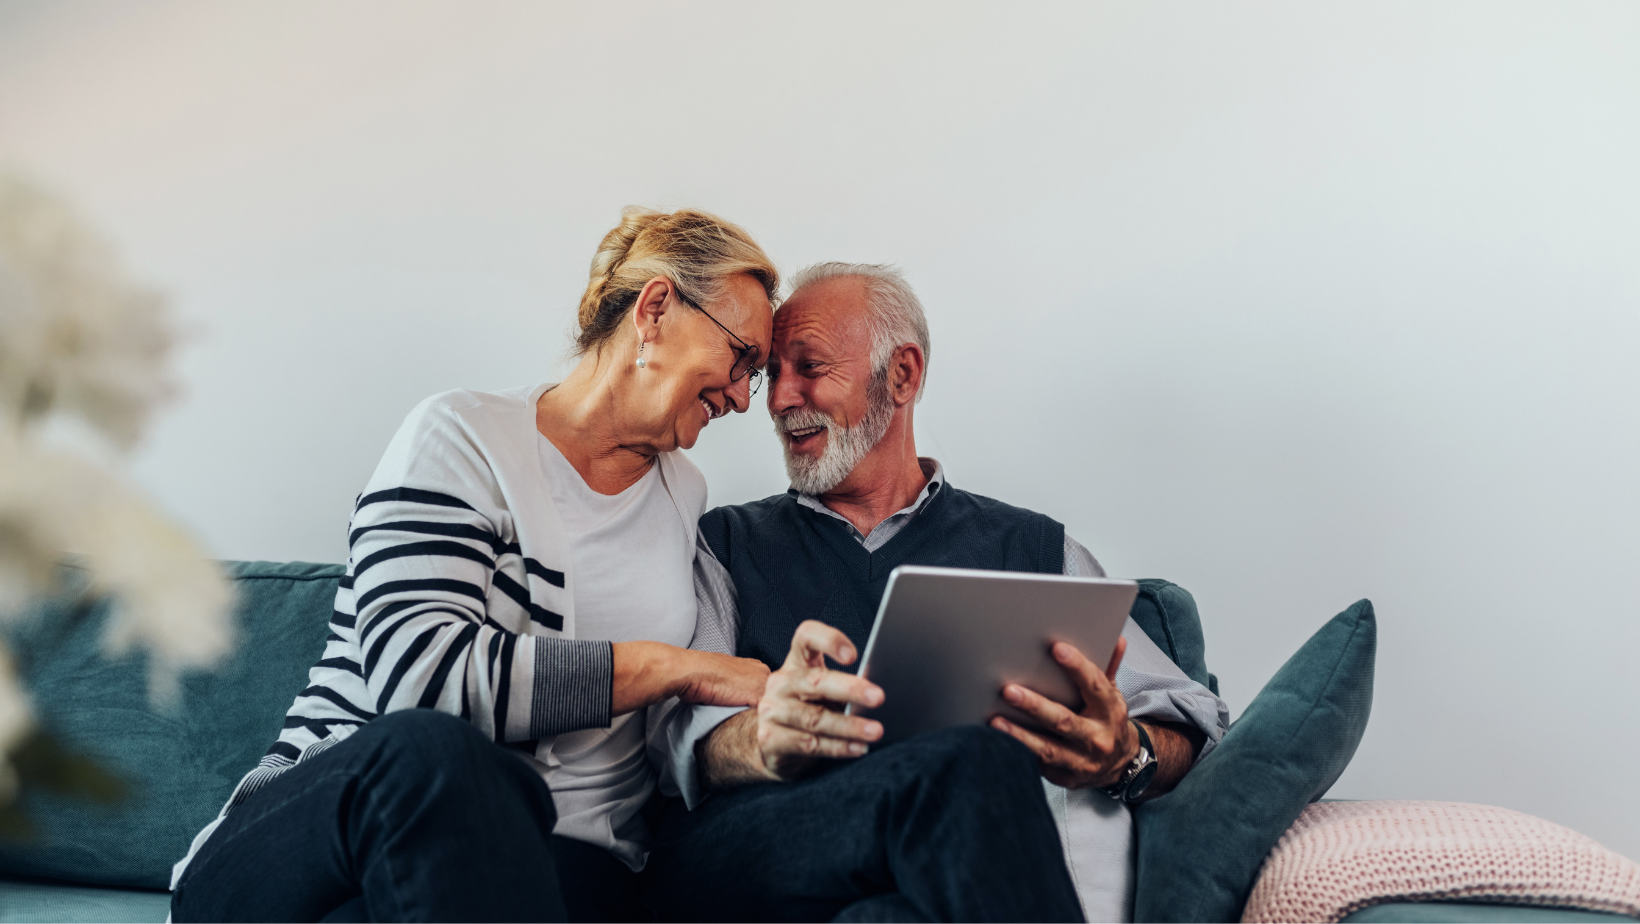 Processing Your 3rd Act: 4 Important Areas for Retirement Planning